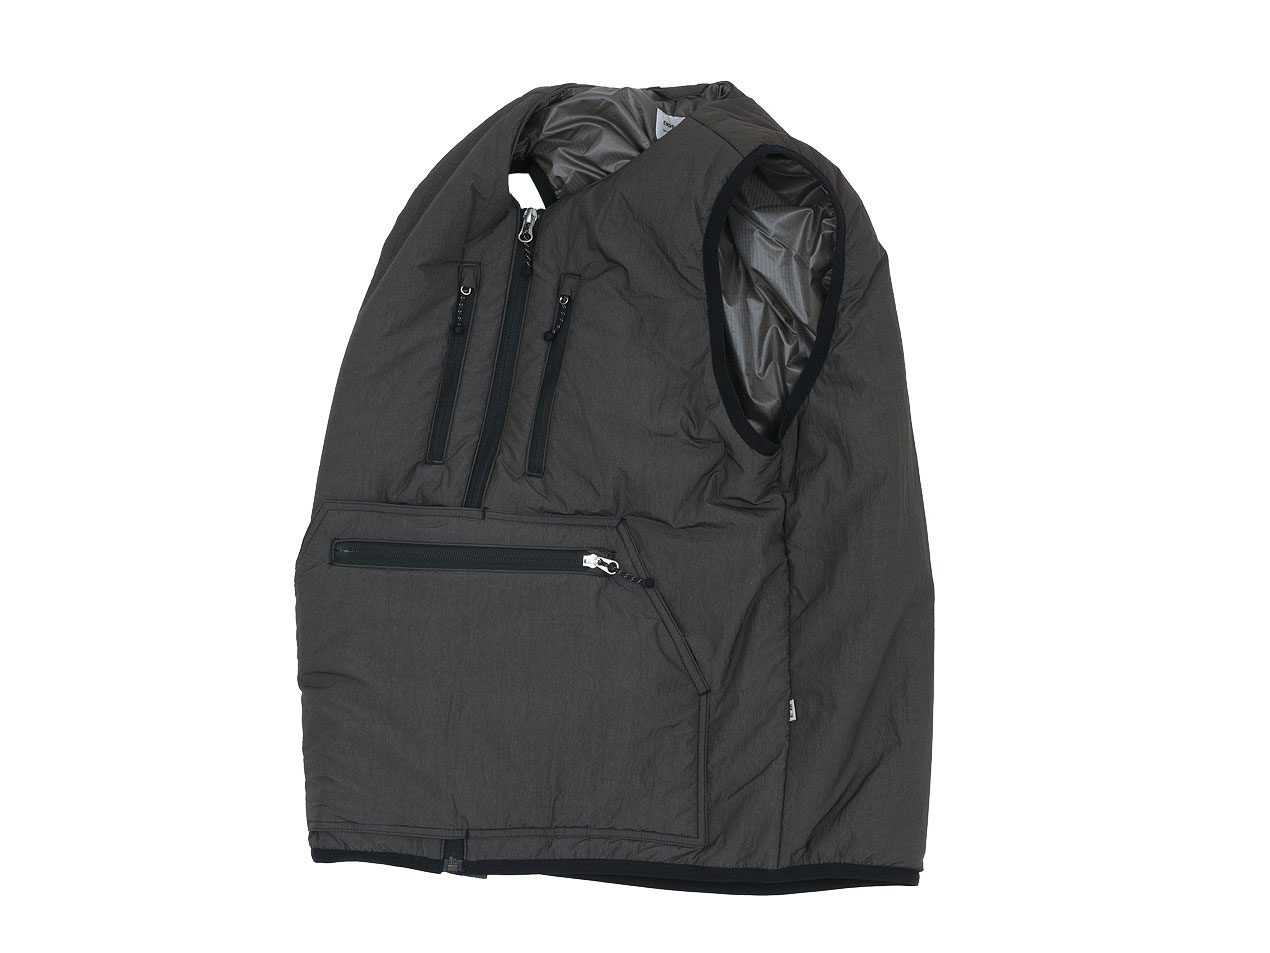 ENDS and MEANS Tactical Puff Vest